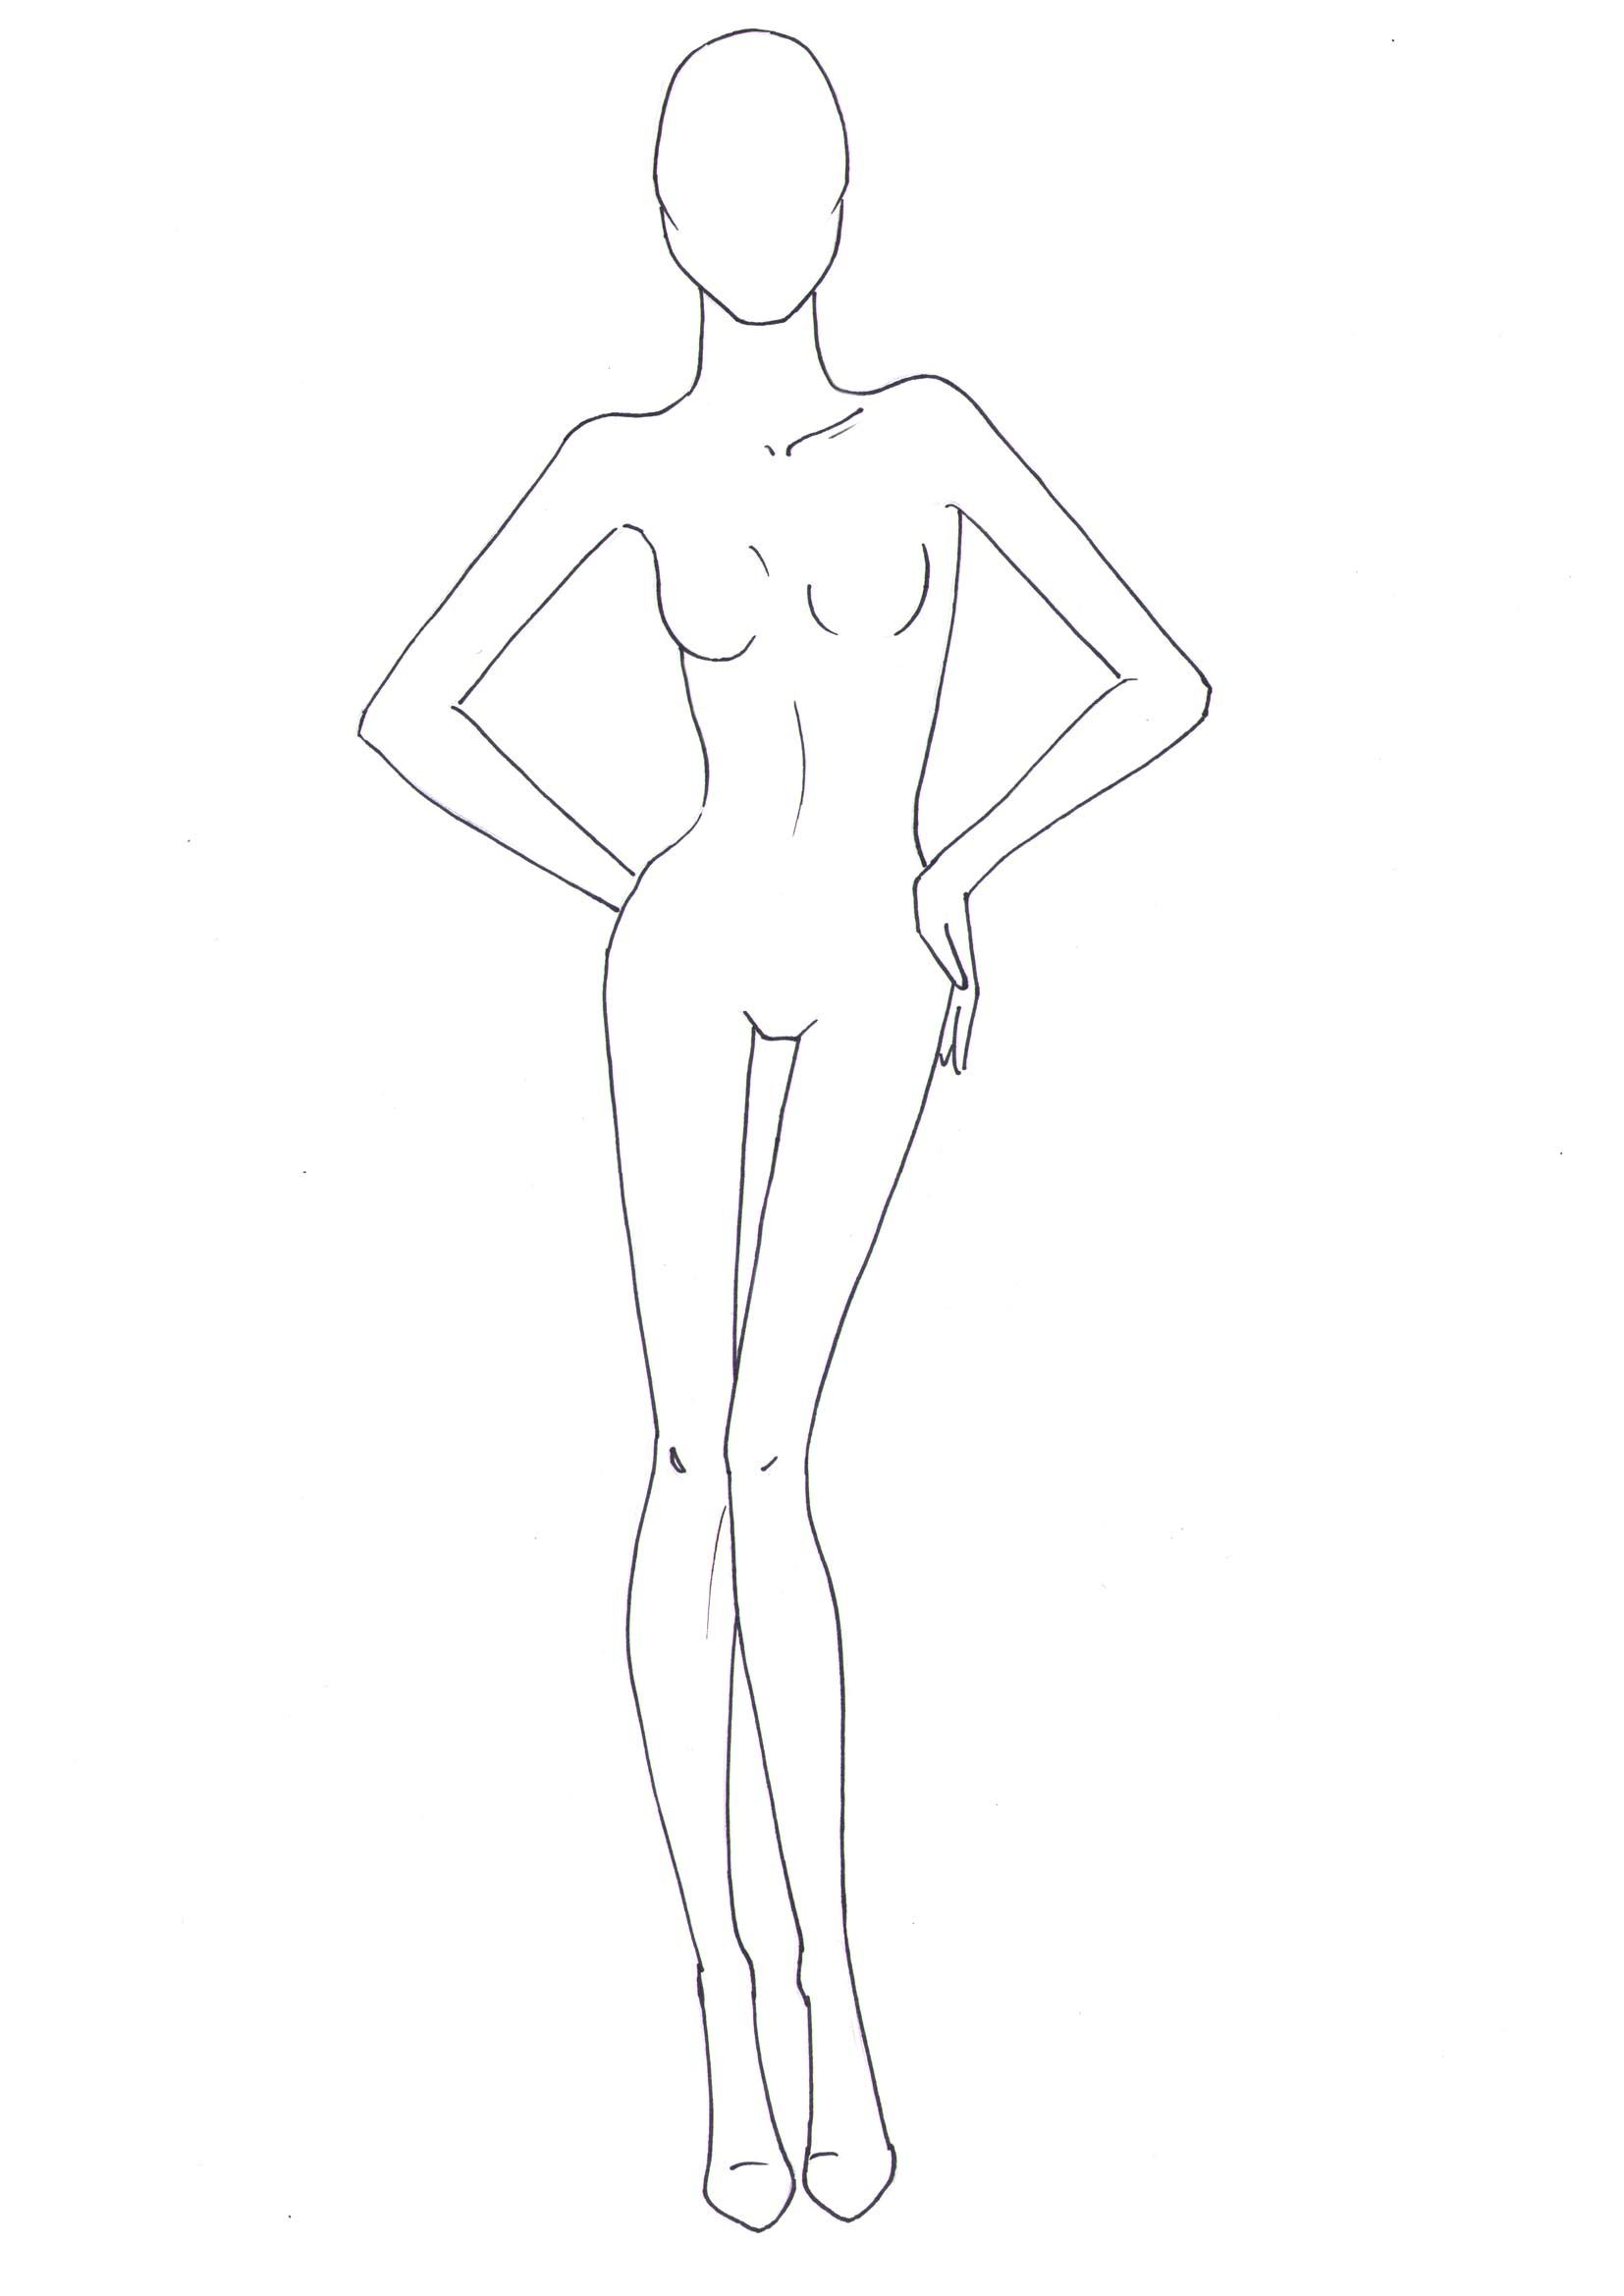 Fashion Drawing - Croqui / Template | FASHION DESIGN | CROQUIS ...